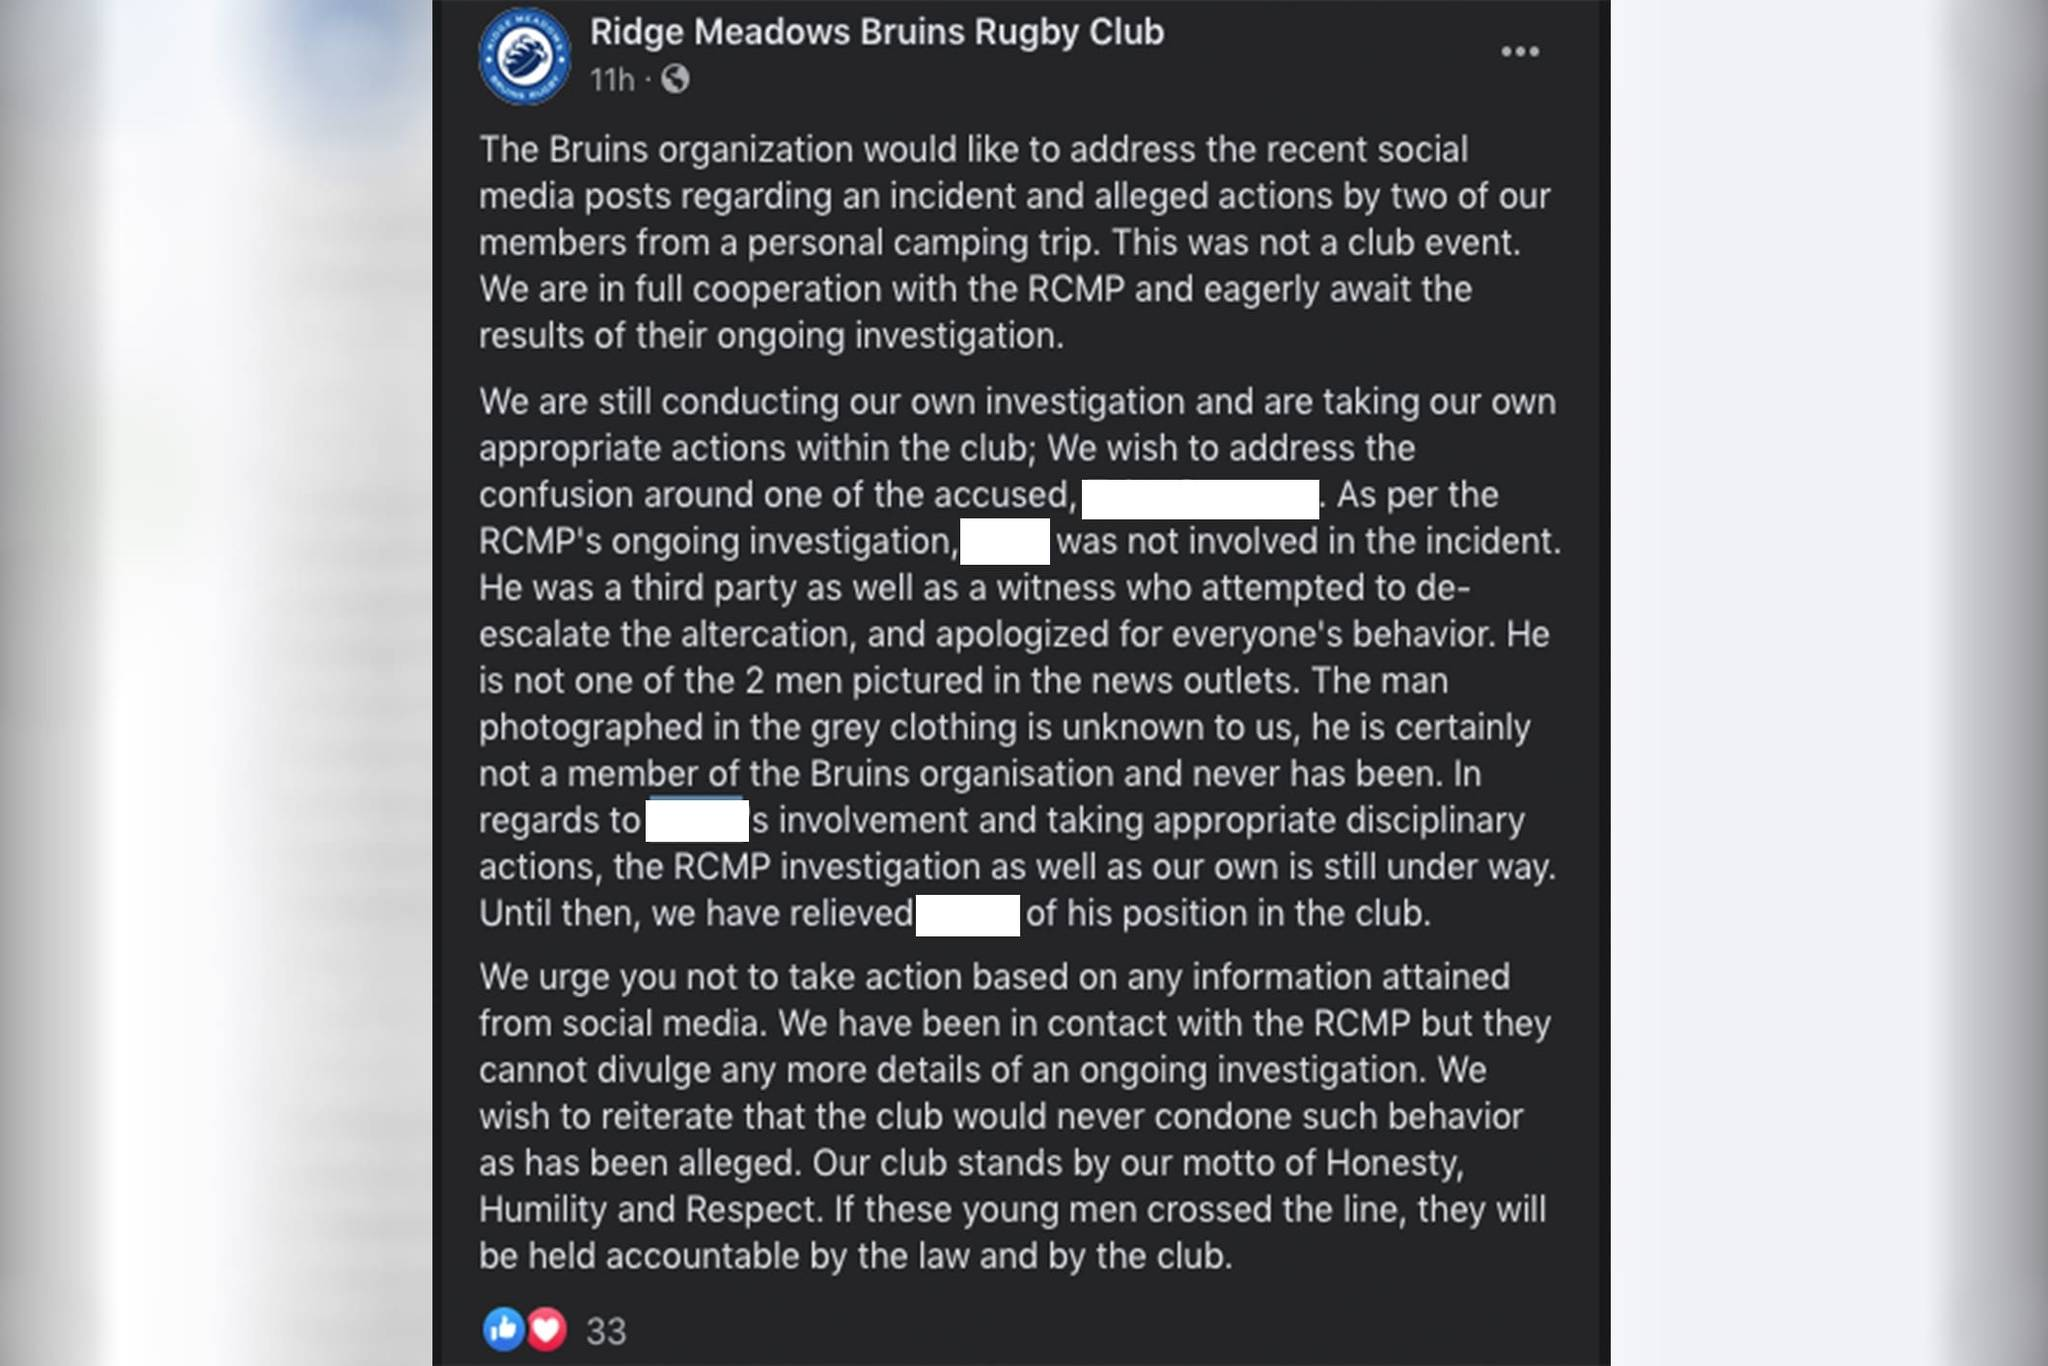 The Ridge Meadows Bruins Rugby Club has released a member of their board of directors pending an investigation into their involvement in an altercation at a Harrison Campsite on Victoria Day. (Screenshot/Facebook)